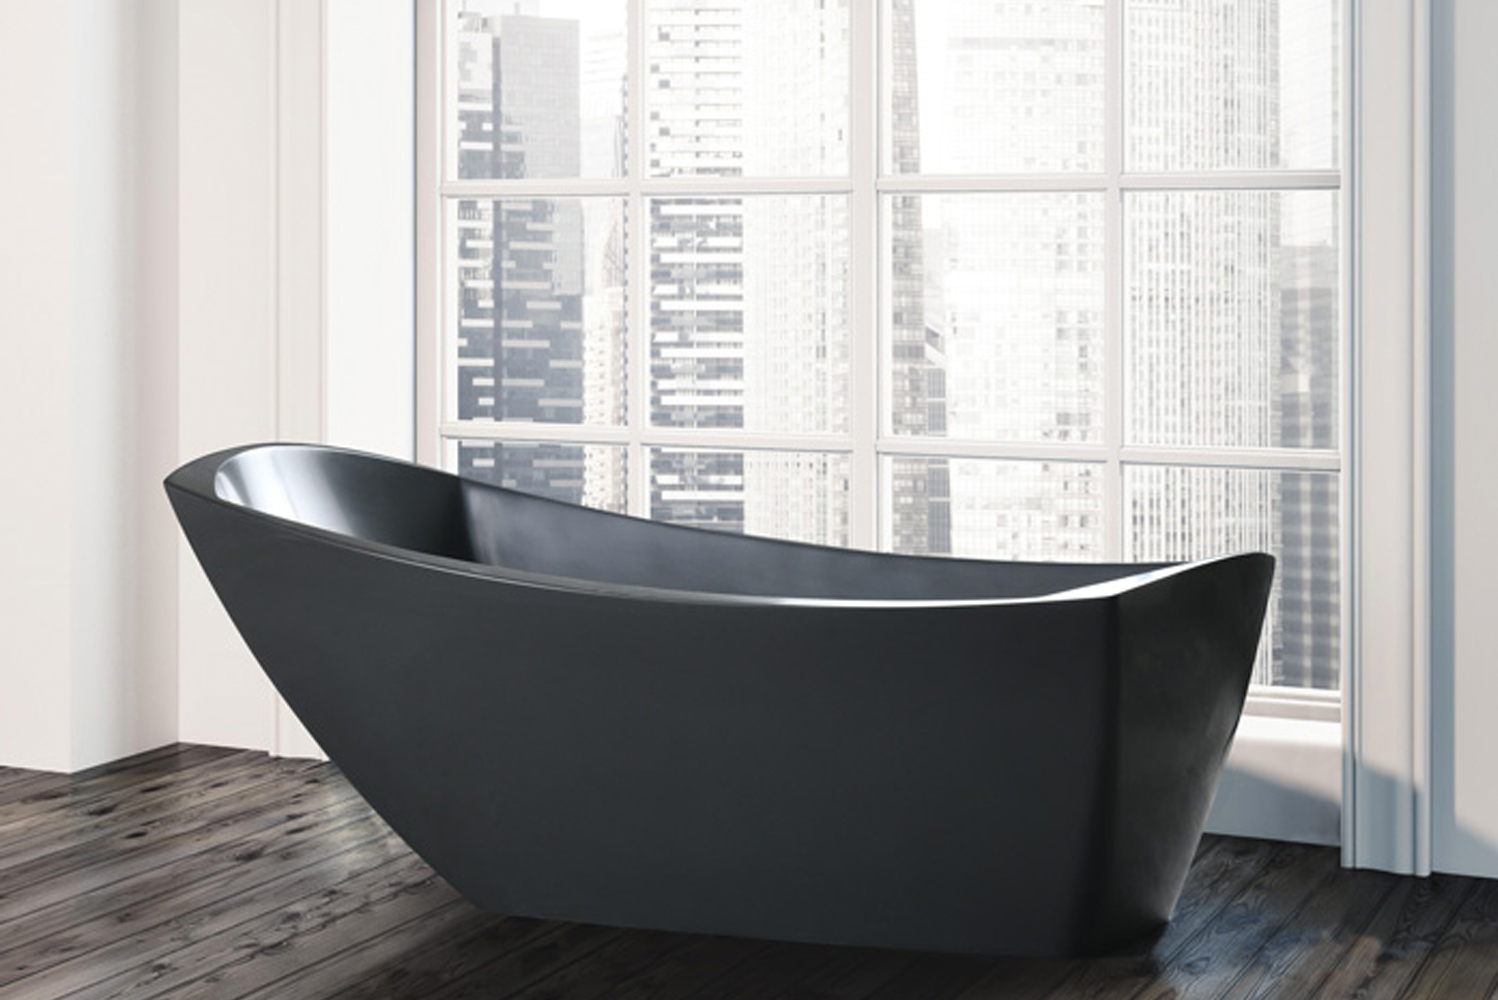 Introducing the newly relaunched Chelsea bathtub from Hastings Tile & Bath.